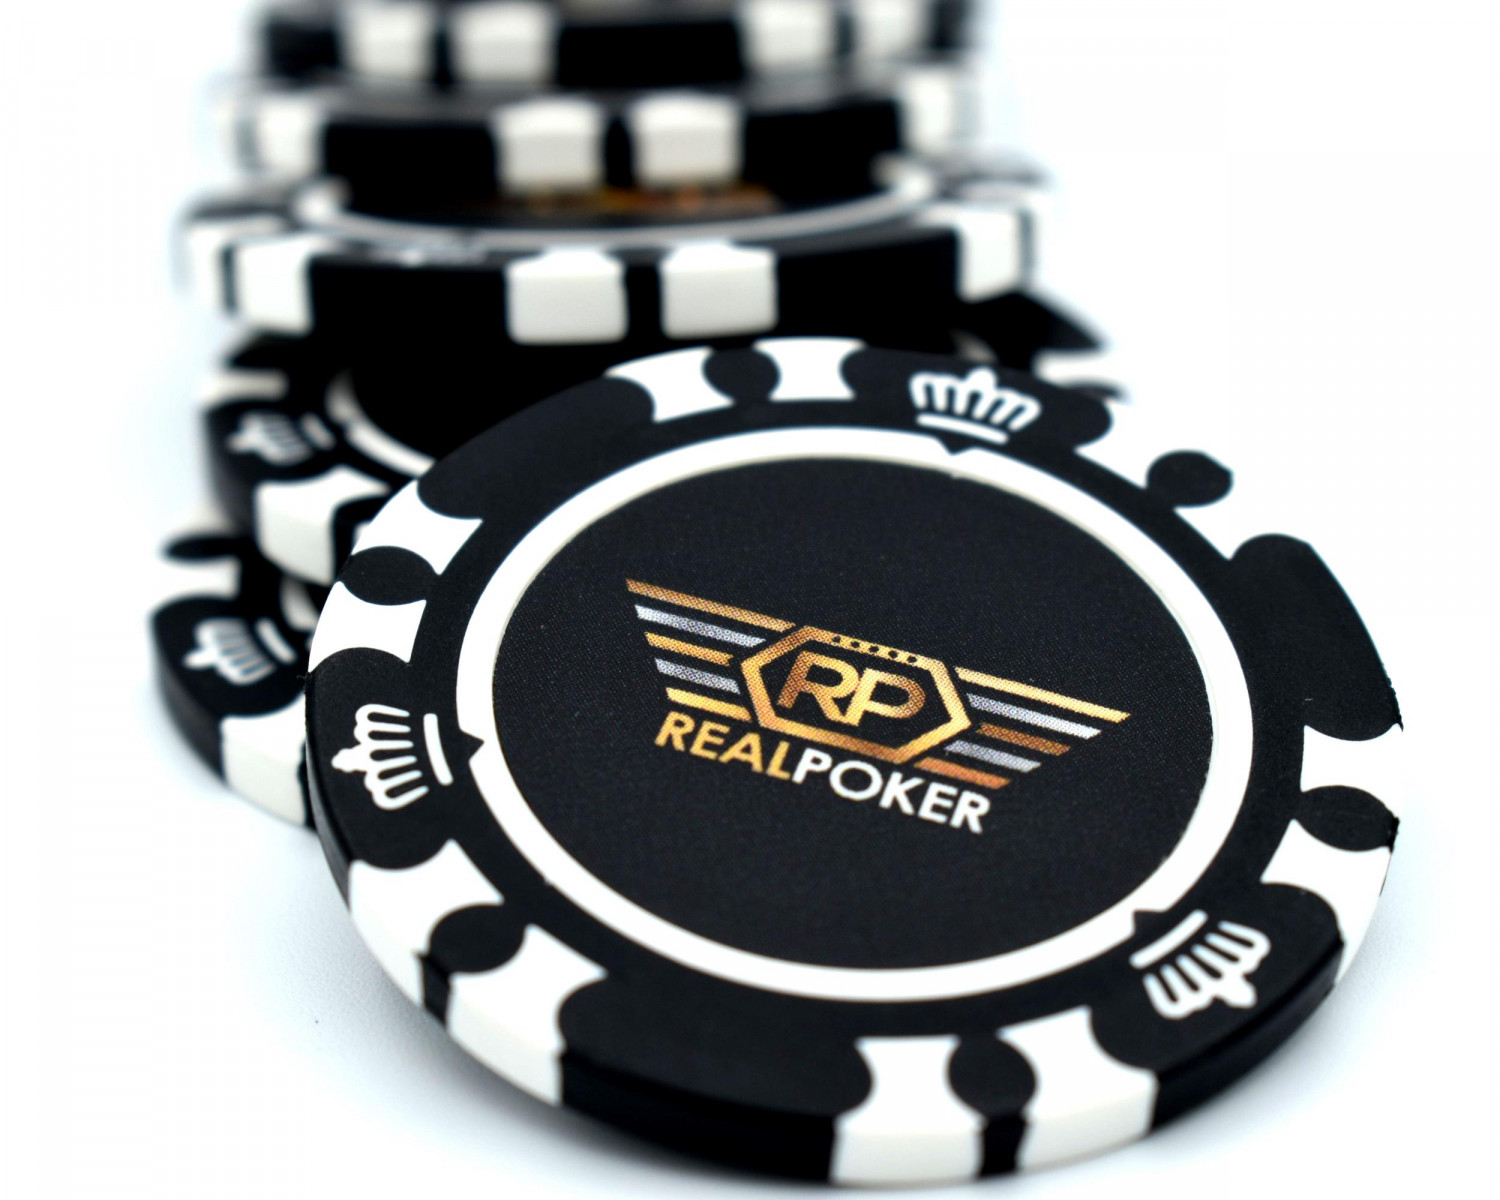 Getting started with poker is easy